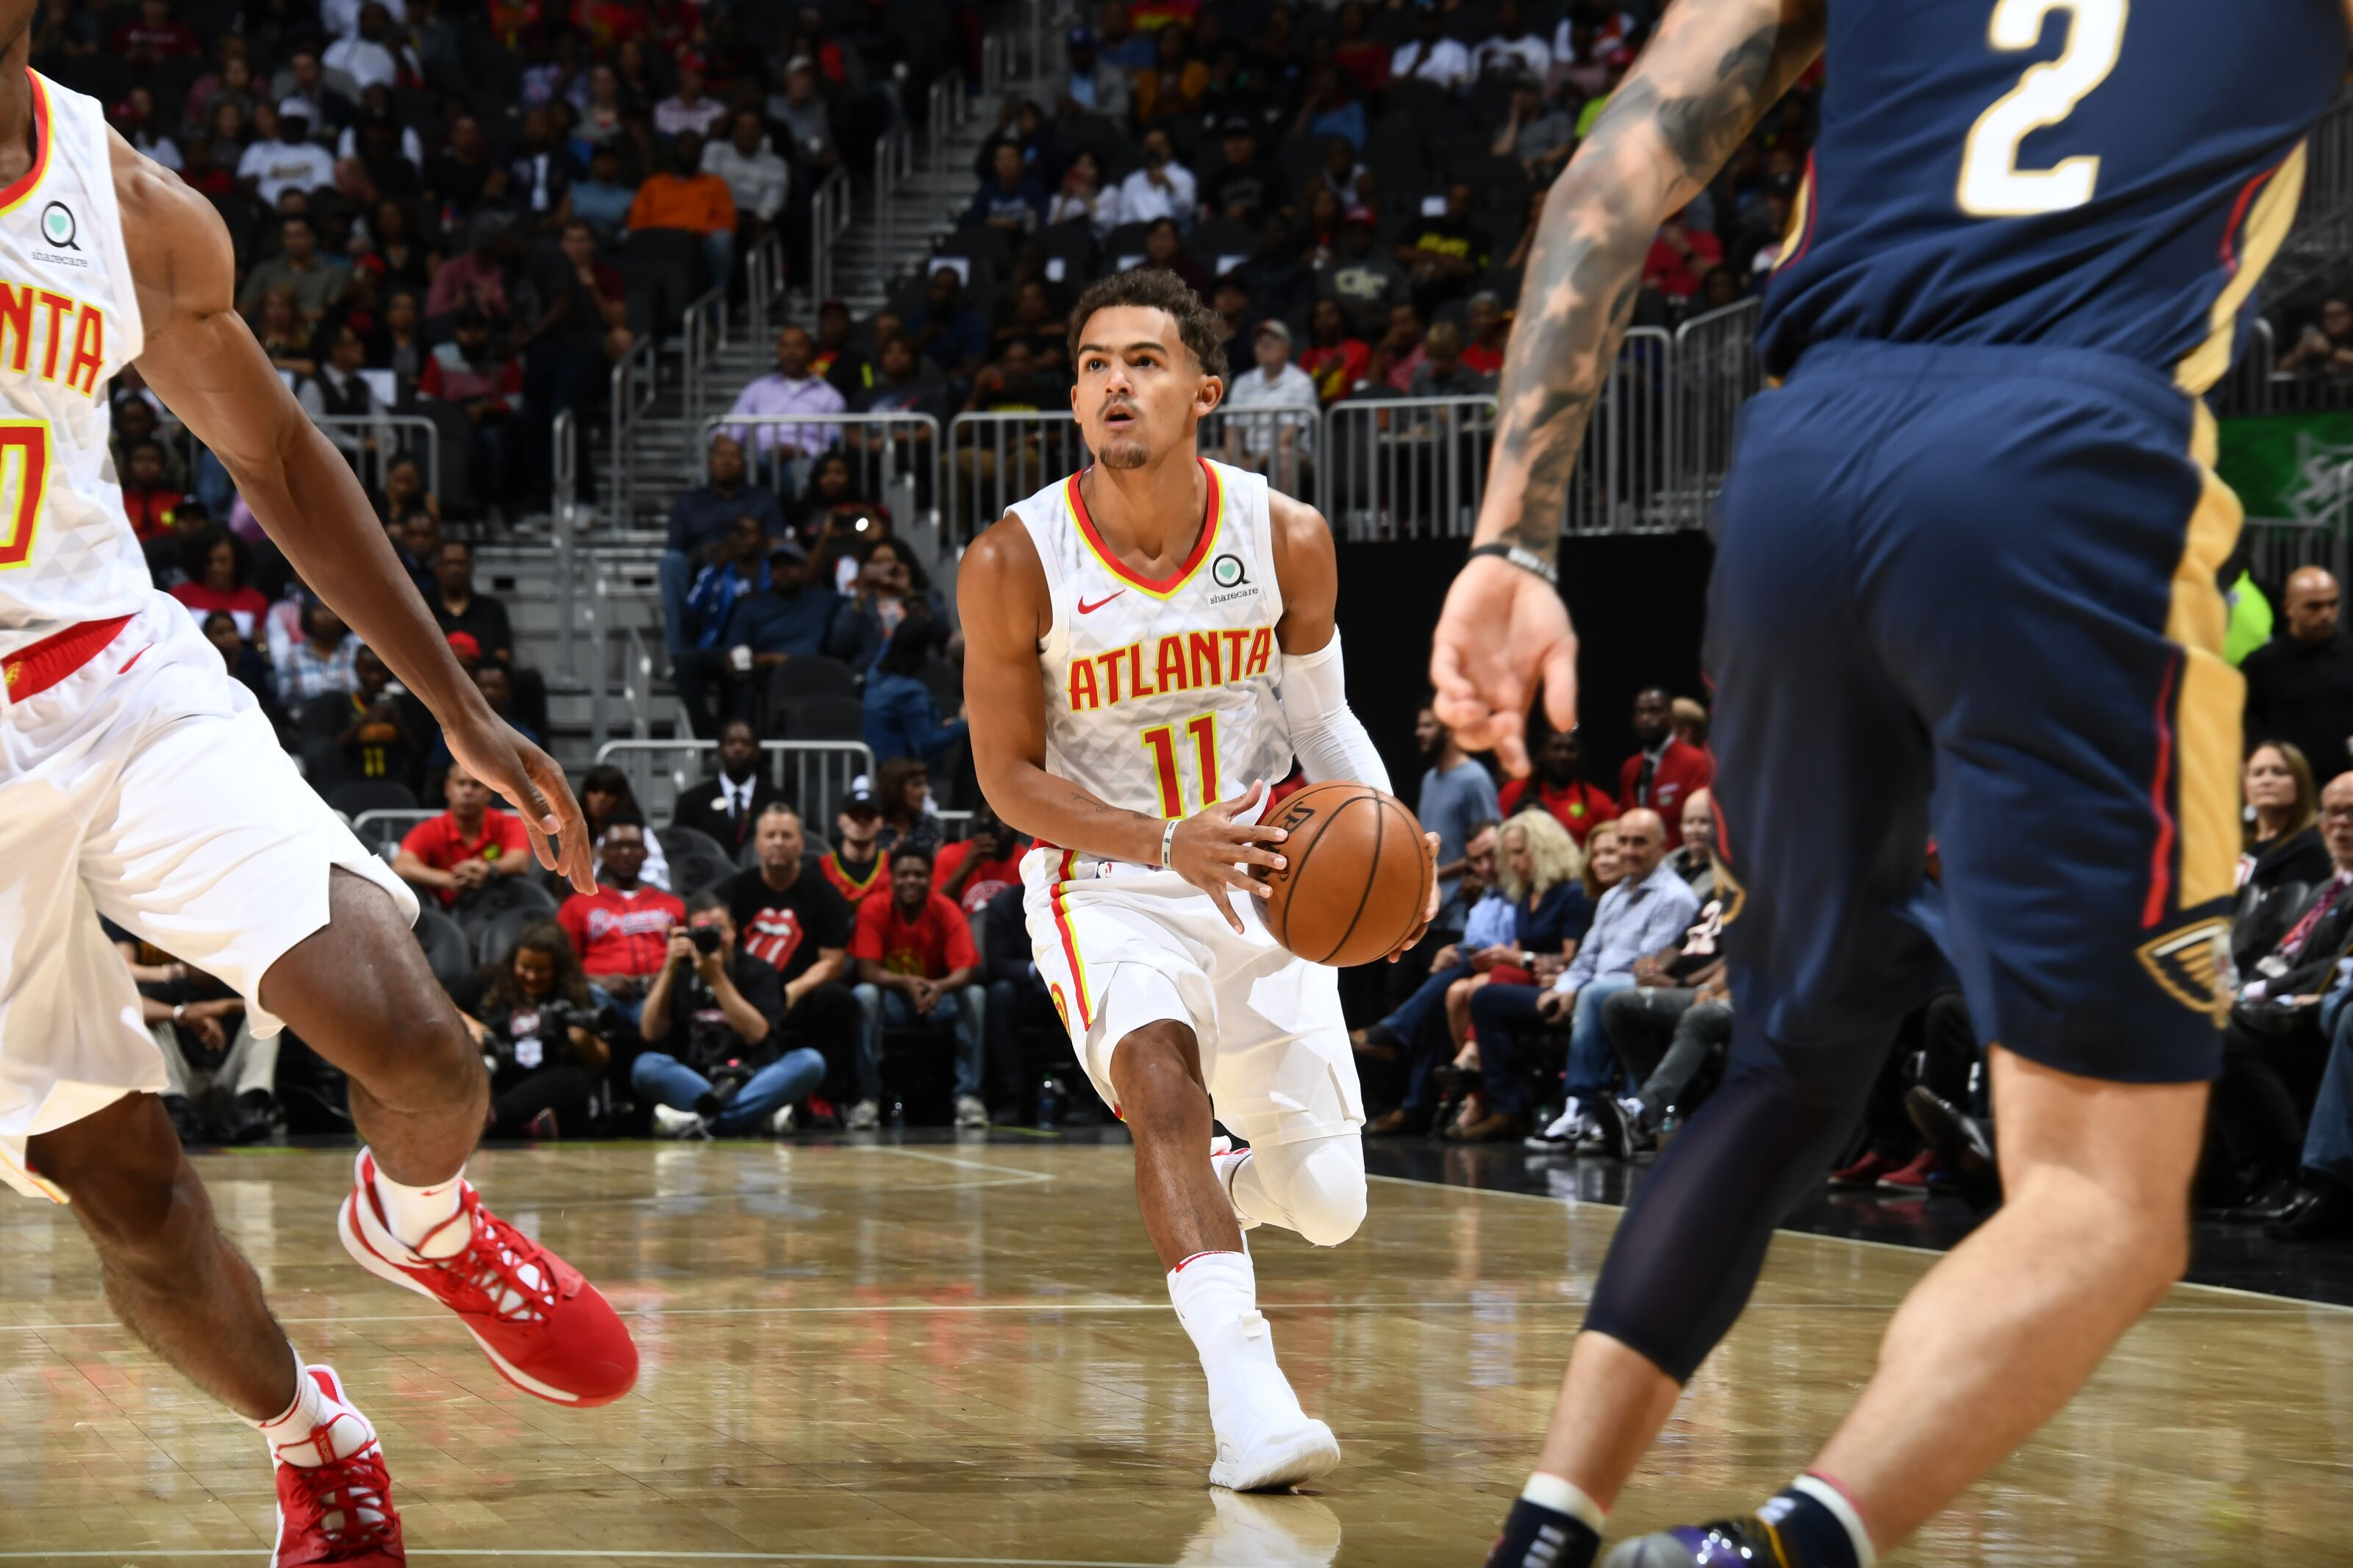 Atlanta Hawks: Trae Young Ranked 12th in Point Guard Rankings